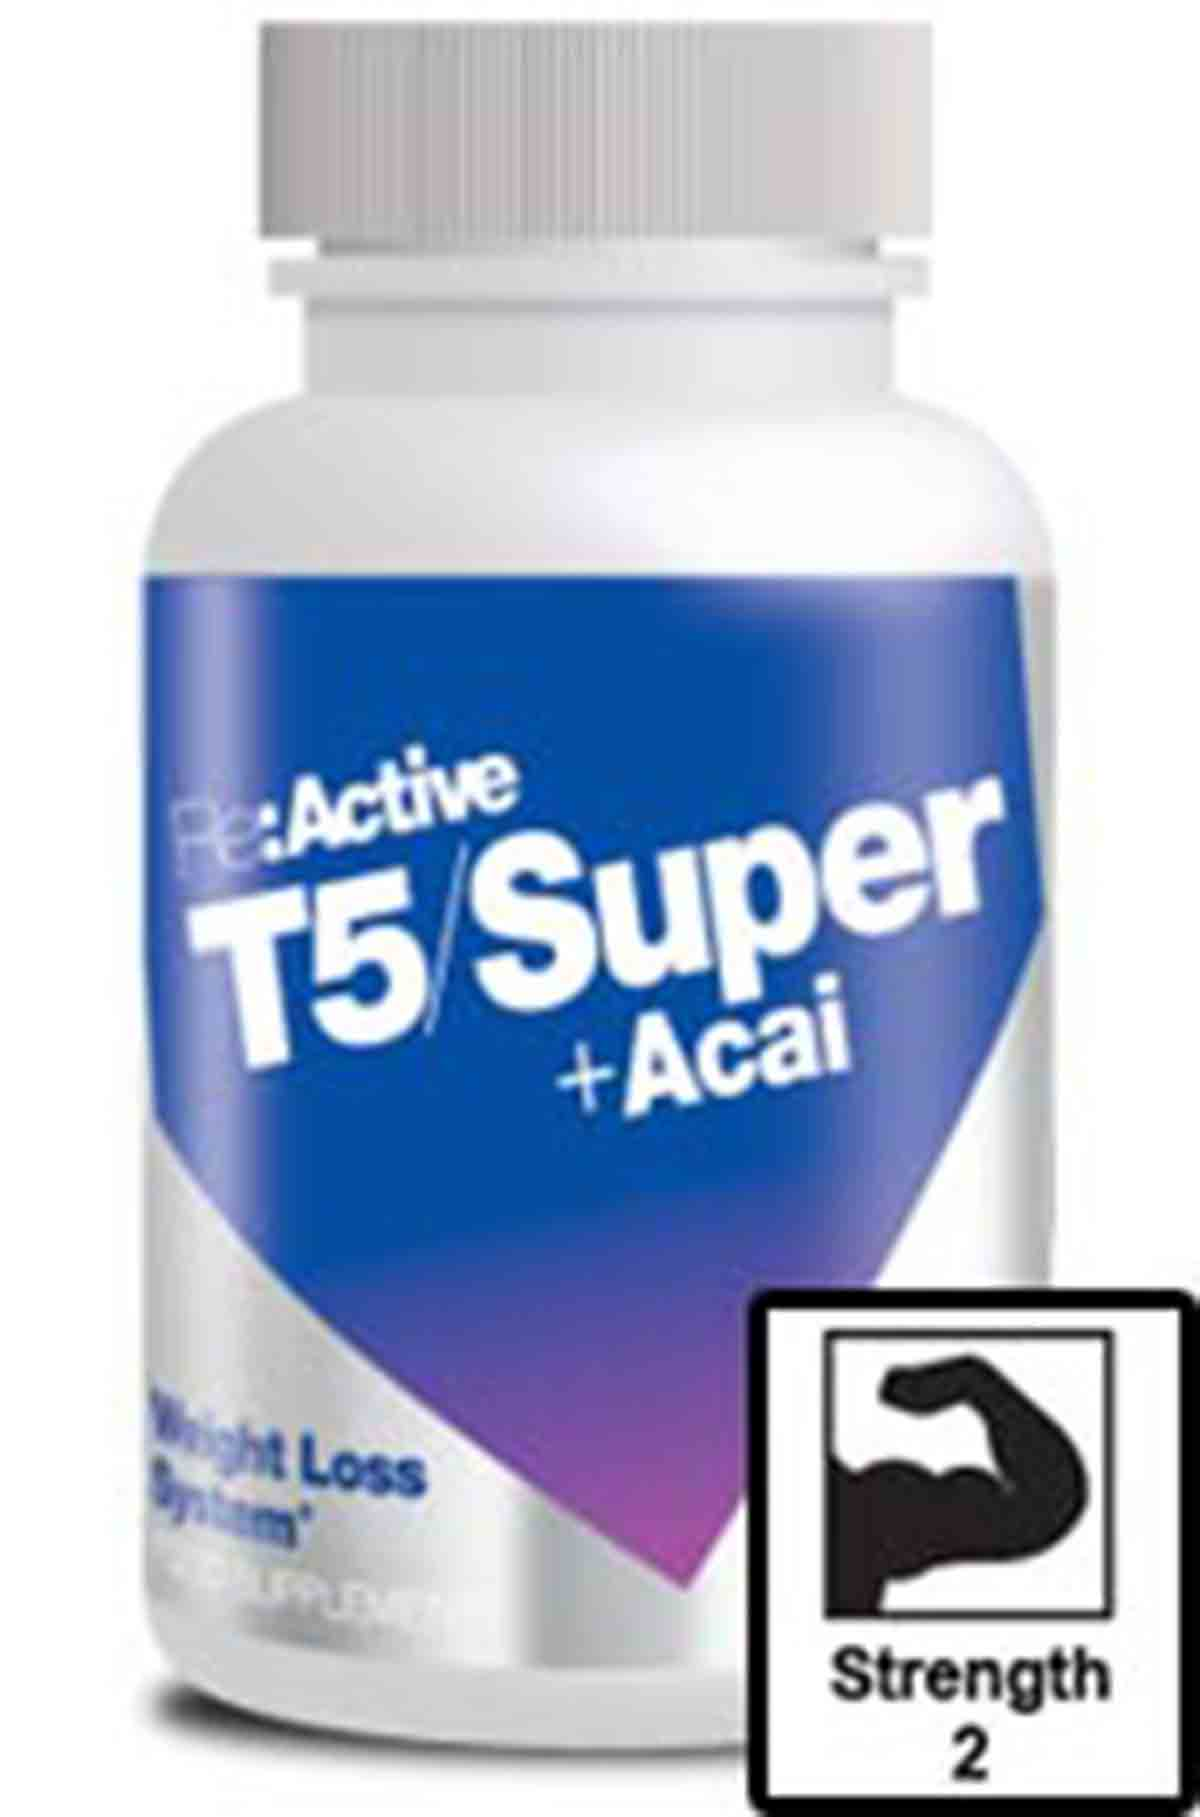 Reactive T5 Super + Acai diet pills